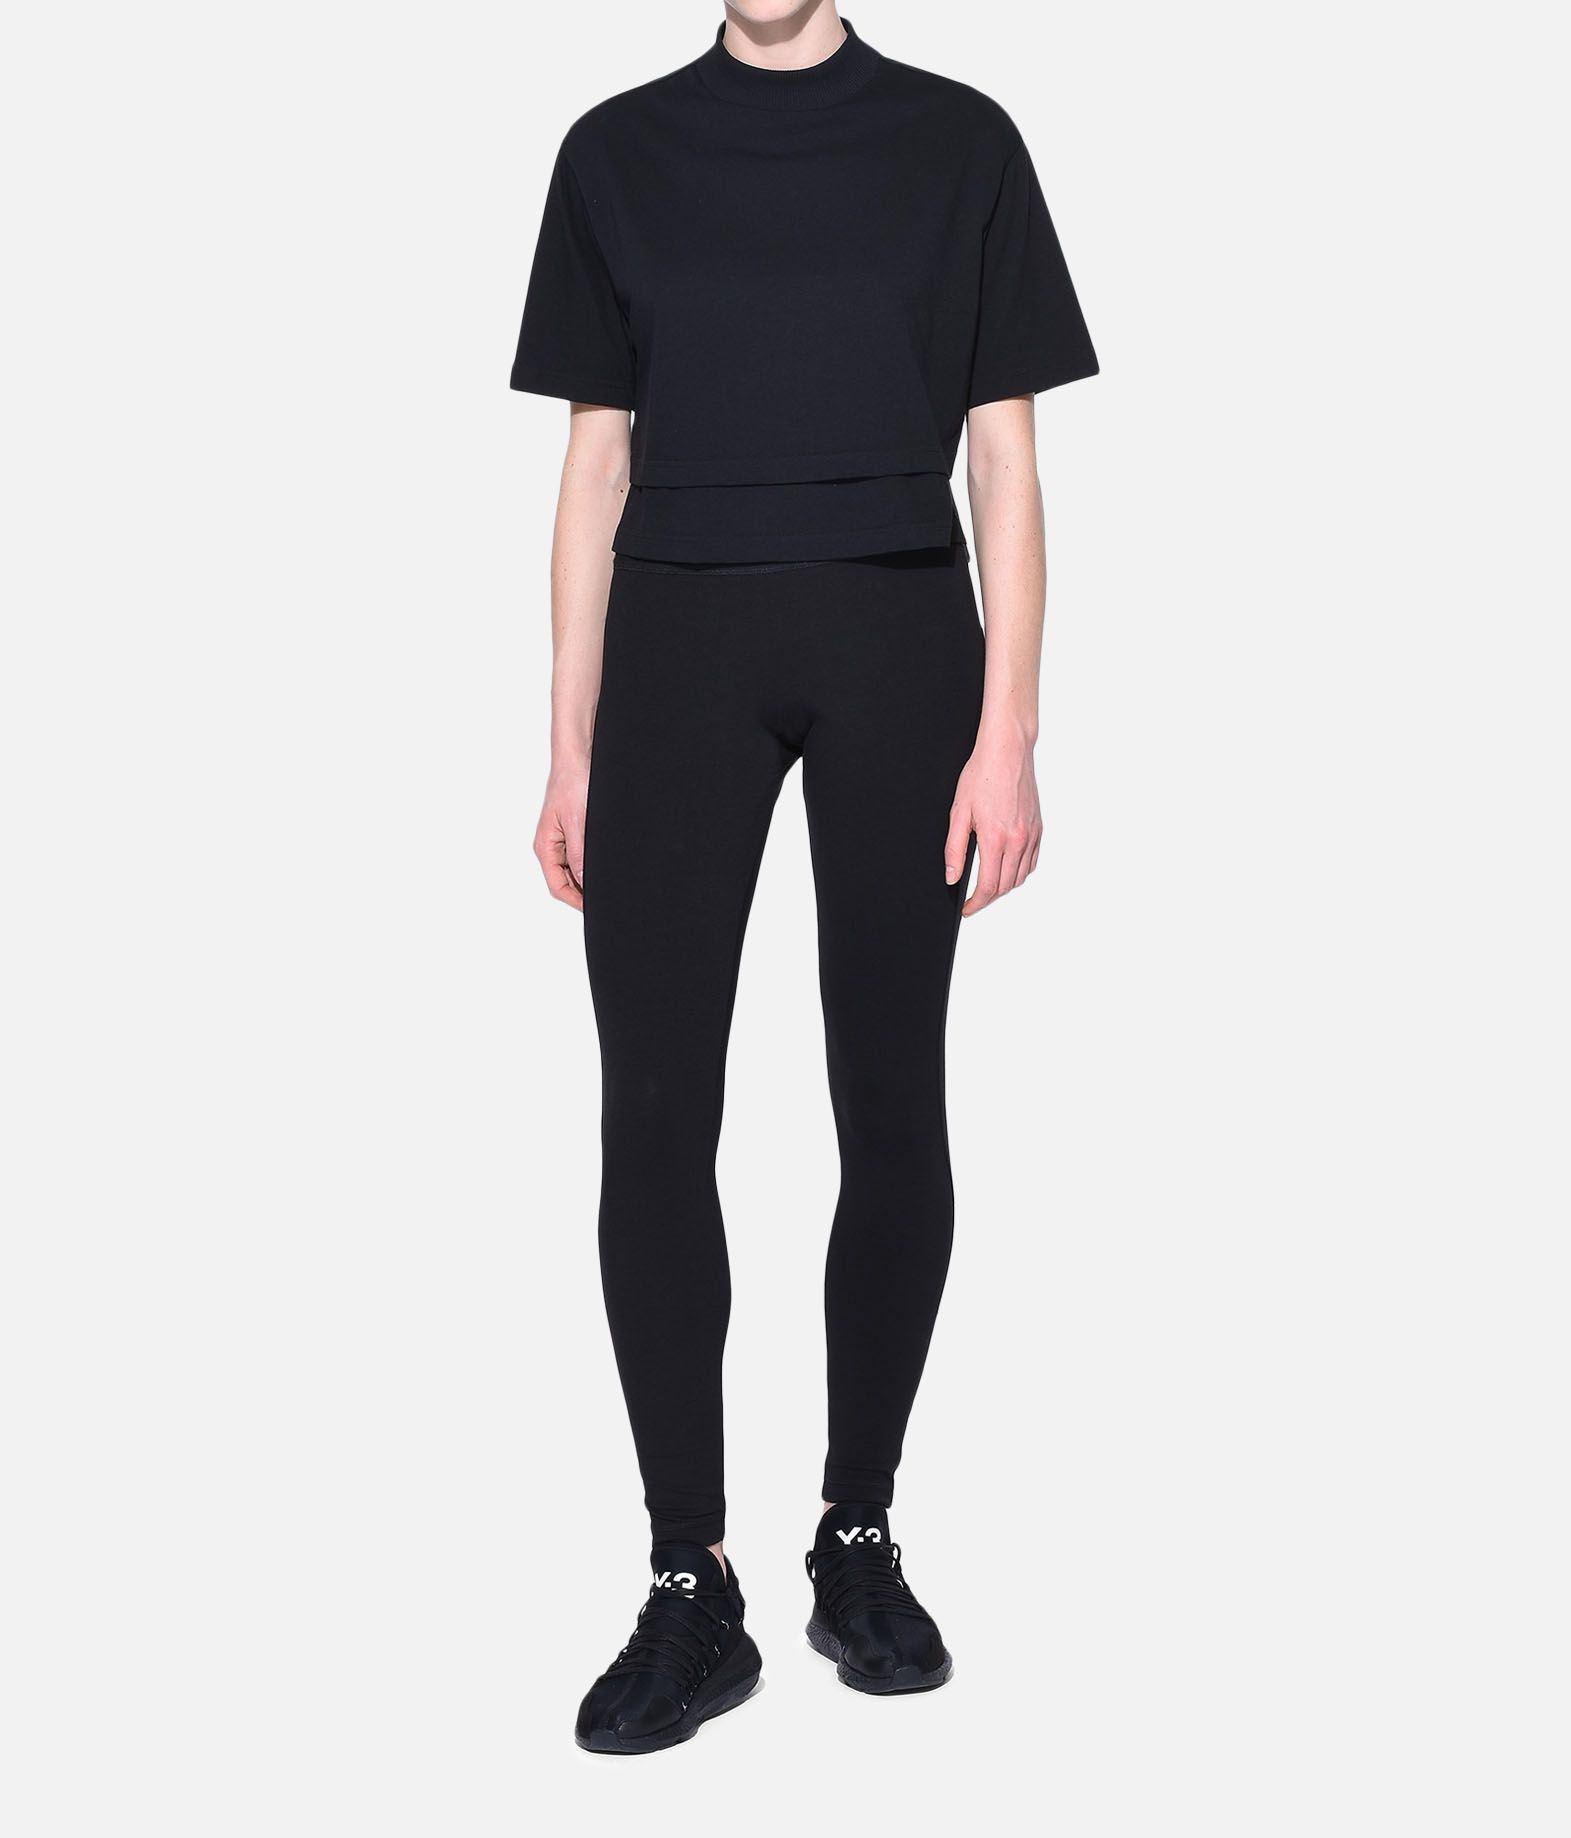 Y-3 Y-3 Logo Leggings Leggings Woman a